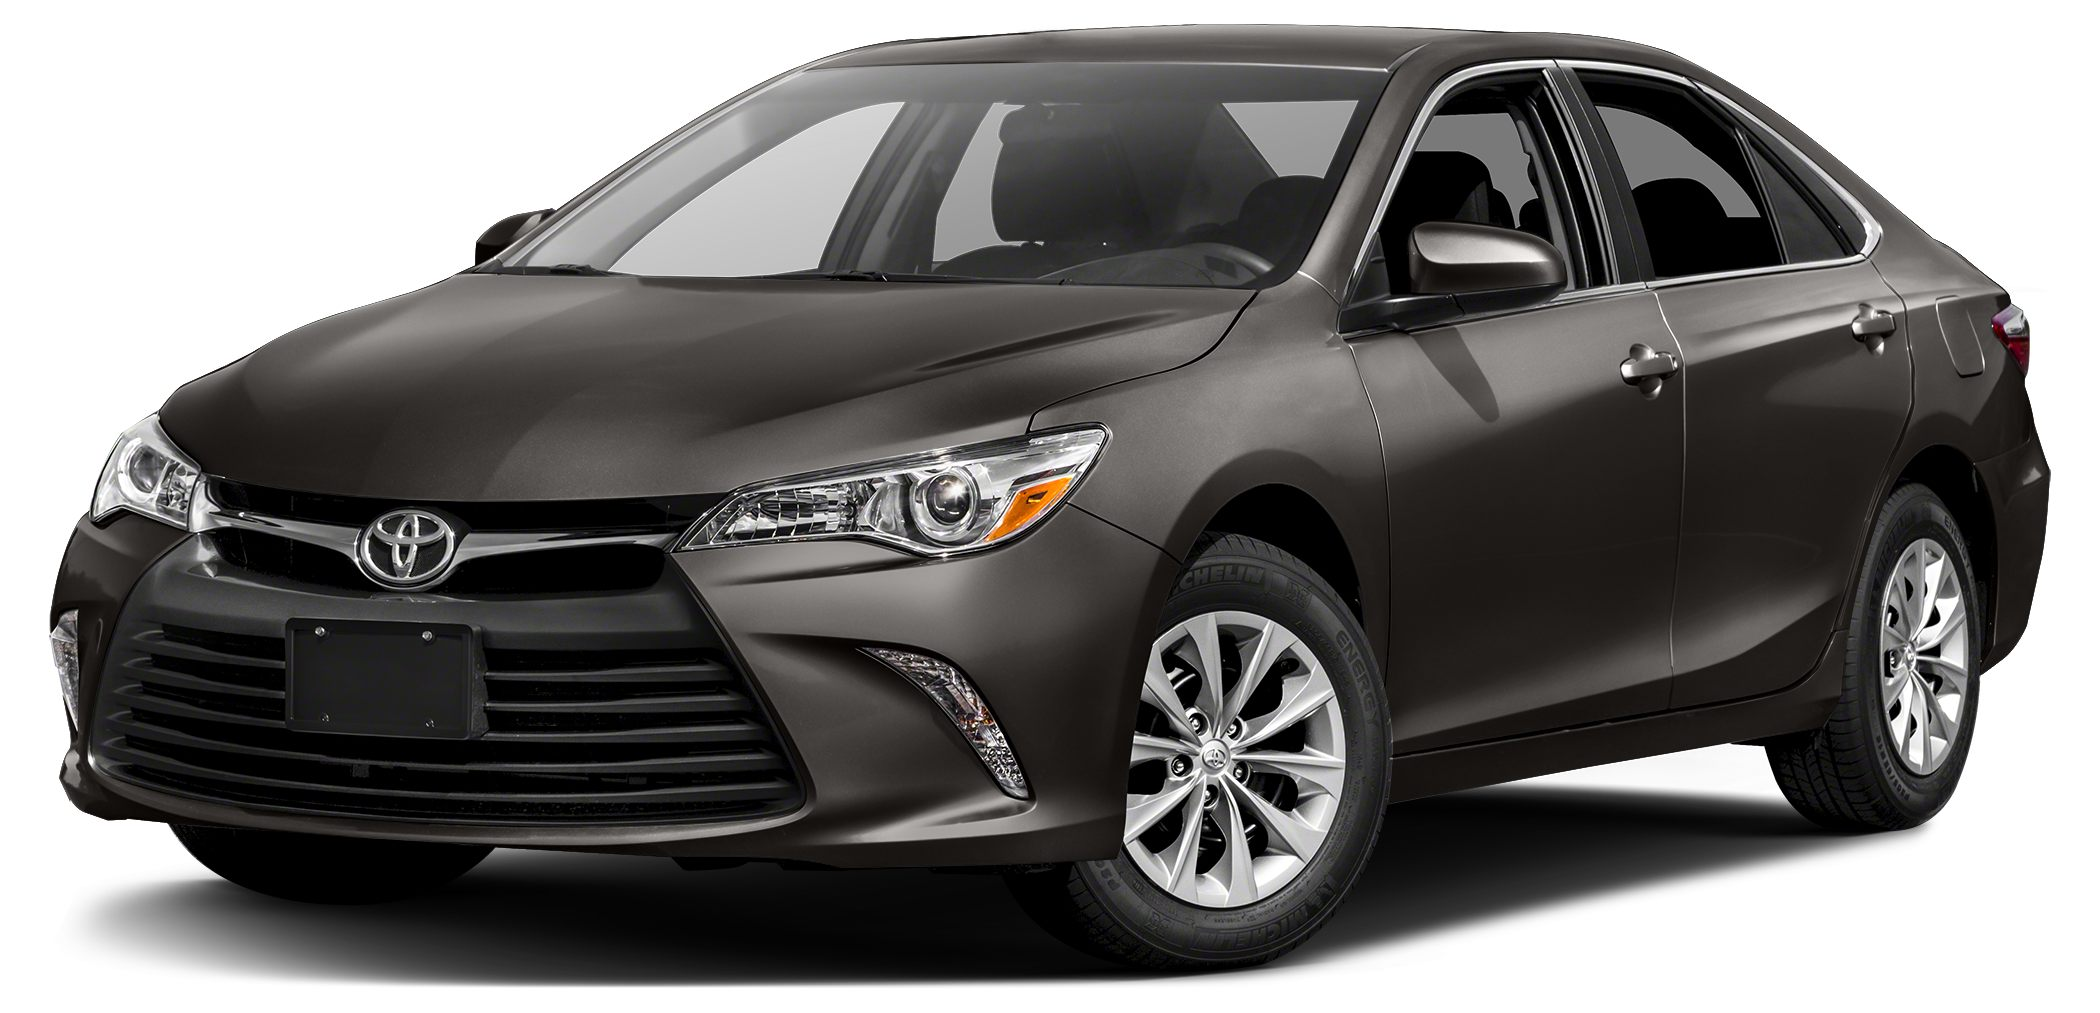 2017 Toyota Camry LE FUEL EFFICIENT 33 MPG Hwy24 MPG City PREDAWN GRAY MICA exterior and ASH int